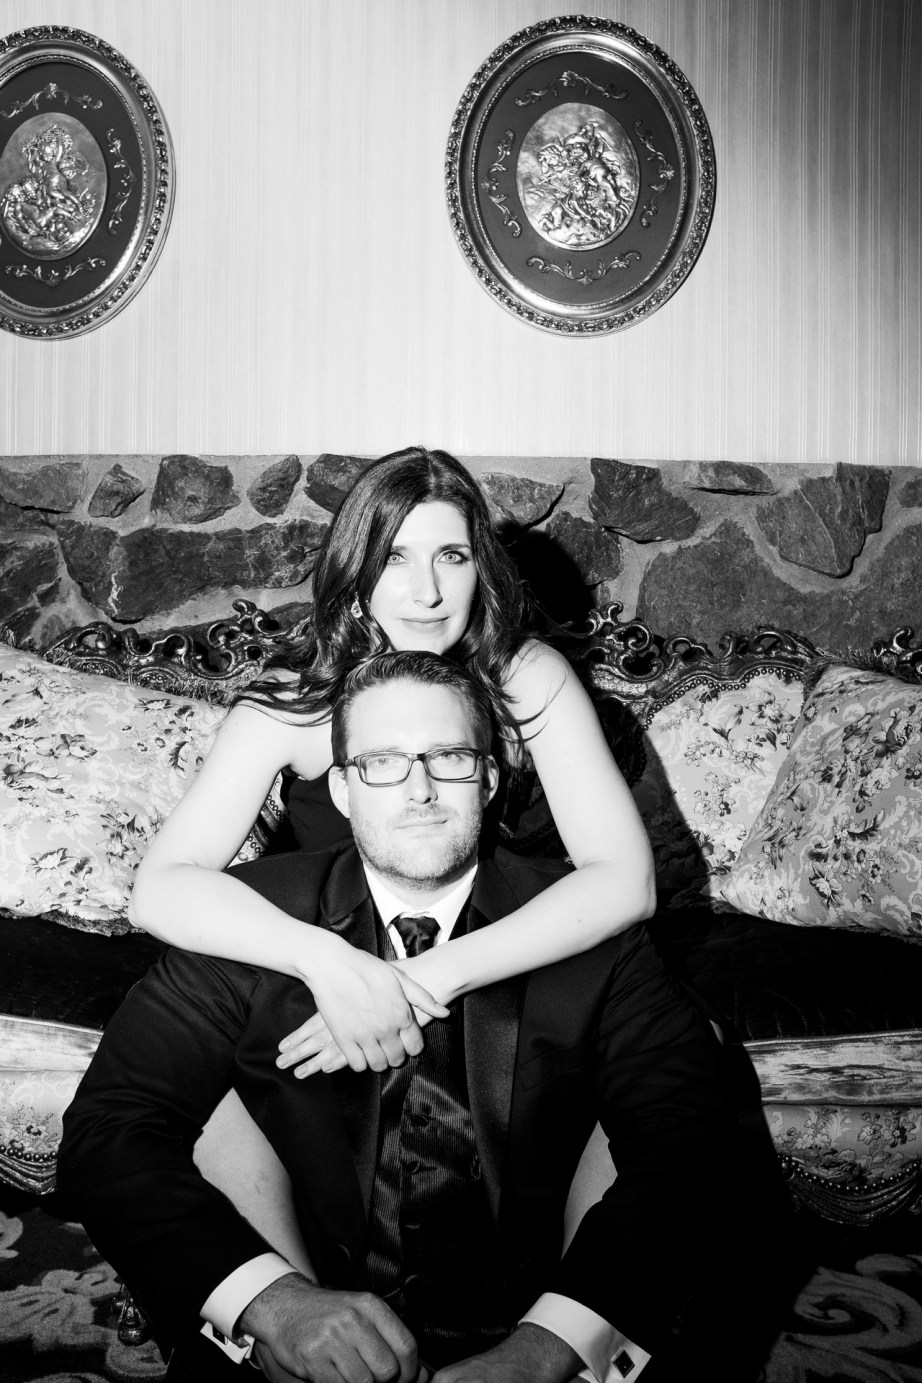 madonna_inn_engagement_photos_Nicole_caldwell_photo_21